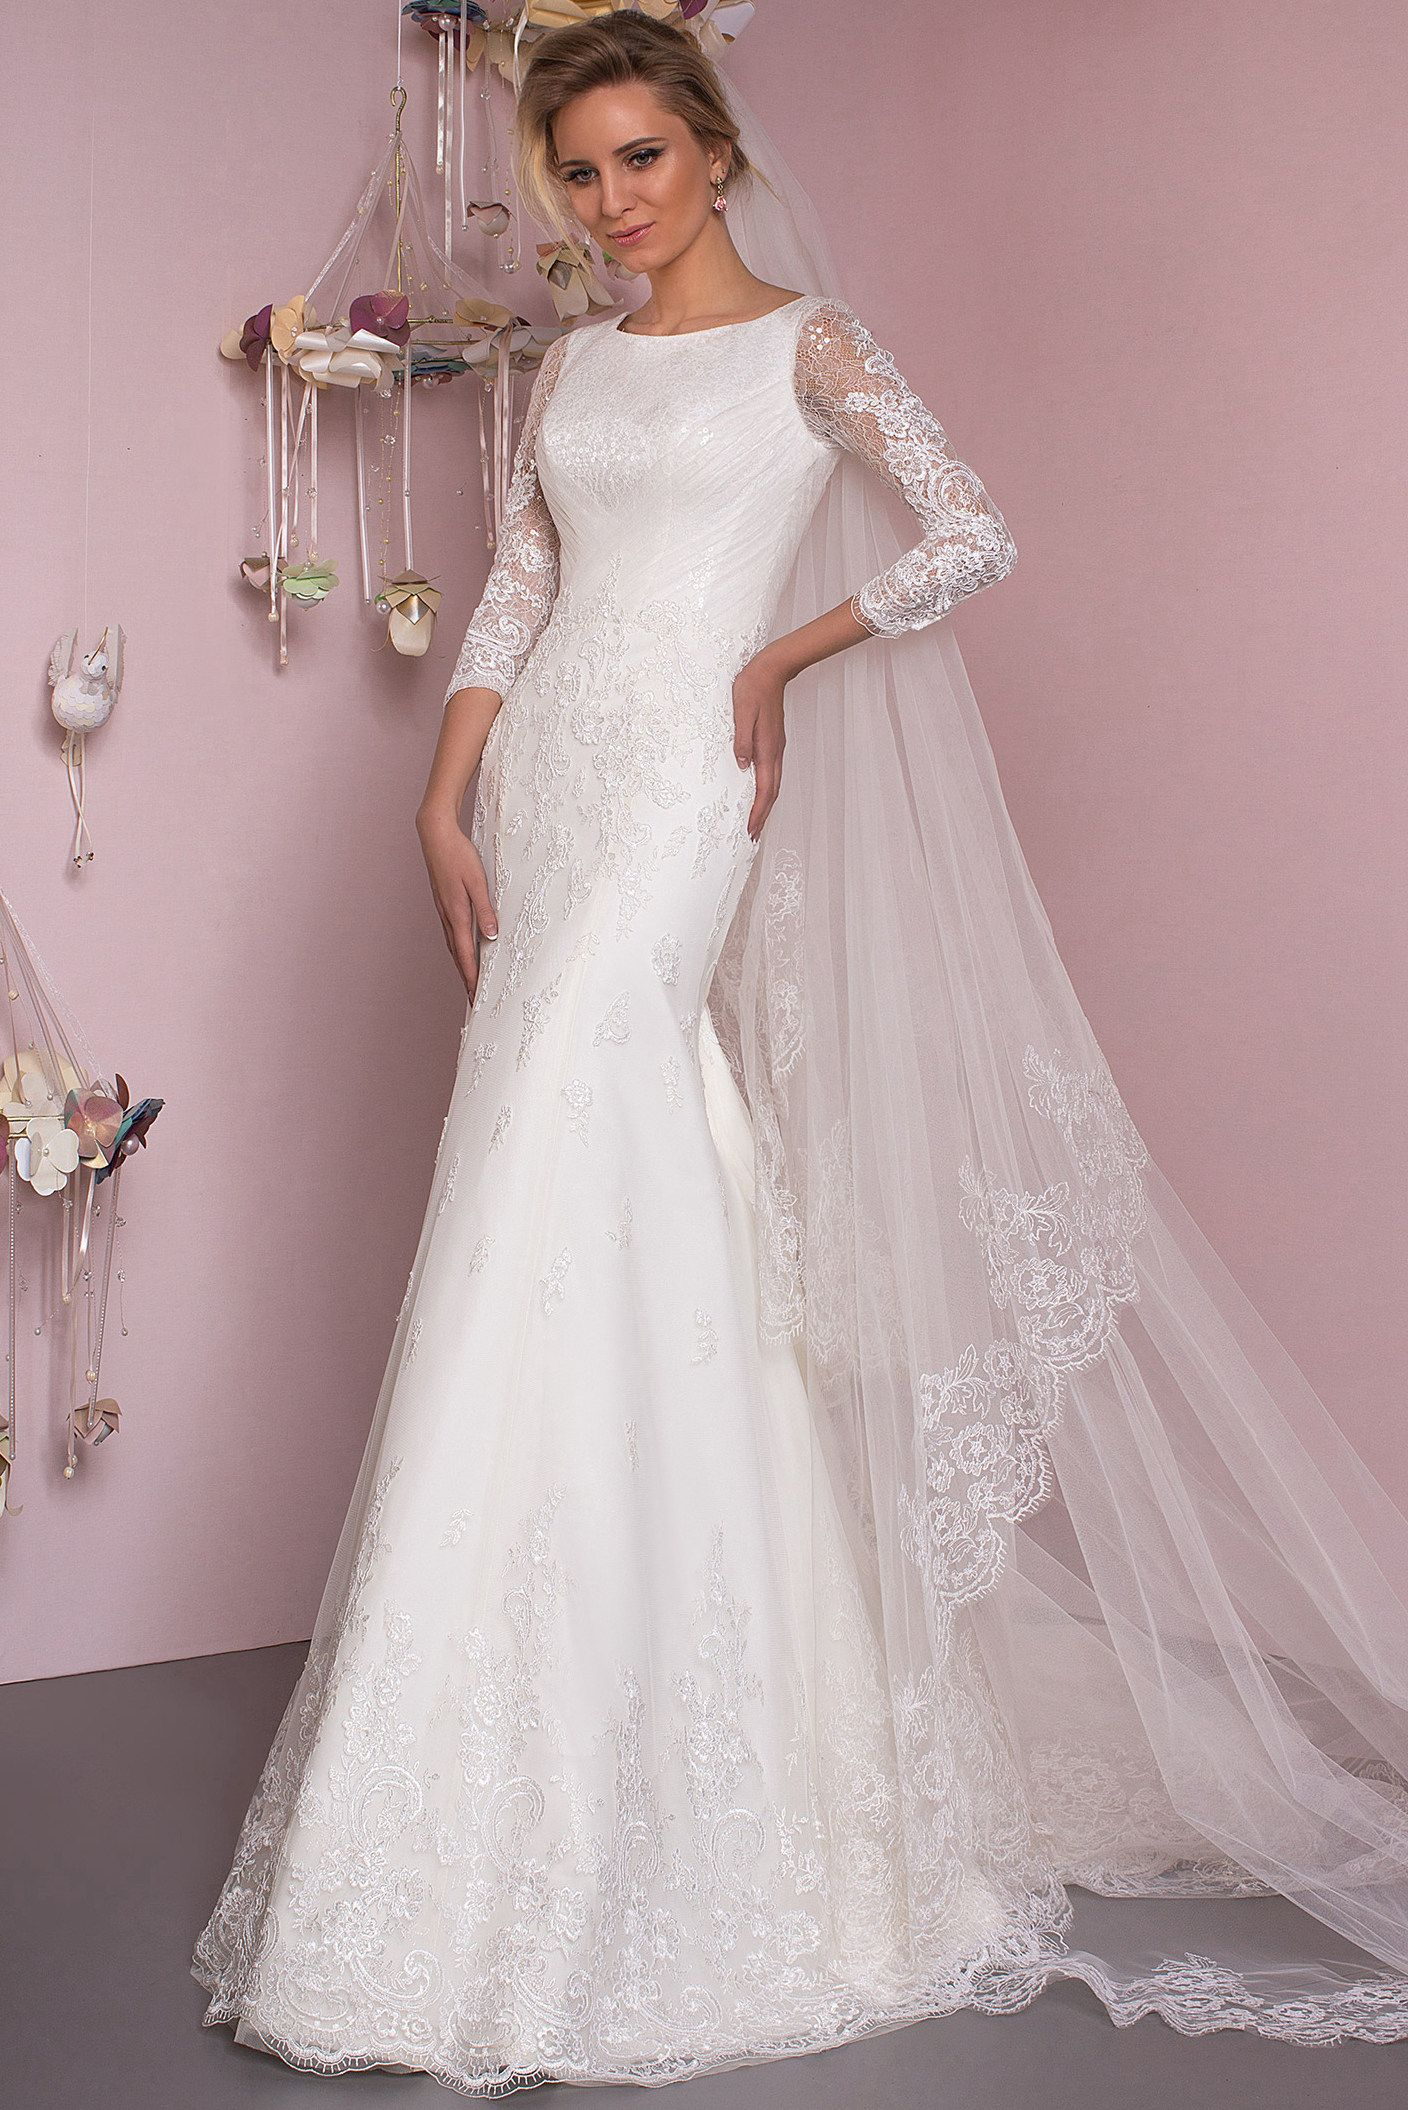 Lace Mermaid Bridal Gown With 3 4 Sleeves Wedding Dresses Affordable Wedding Dresses Bridal Gowns Mermaid [ 2110 x 1408 Pixel ]